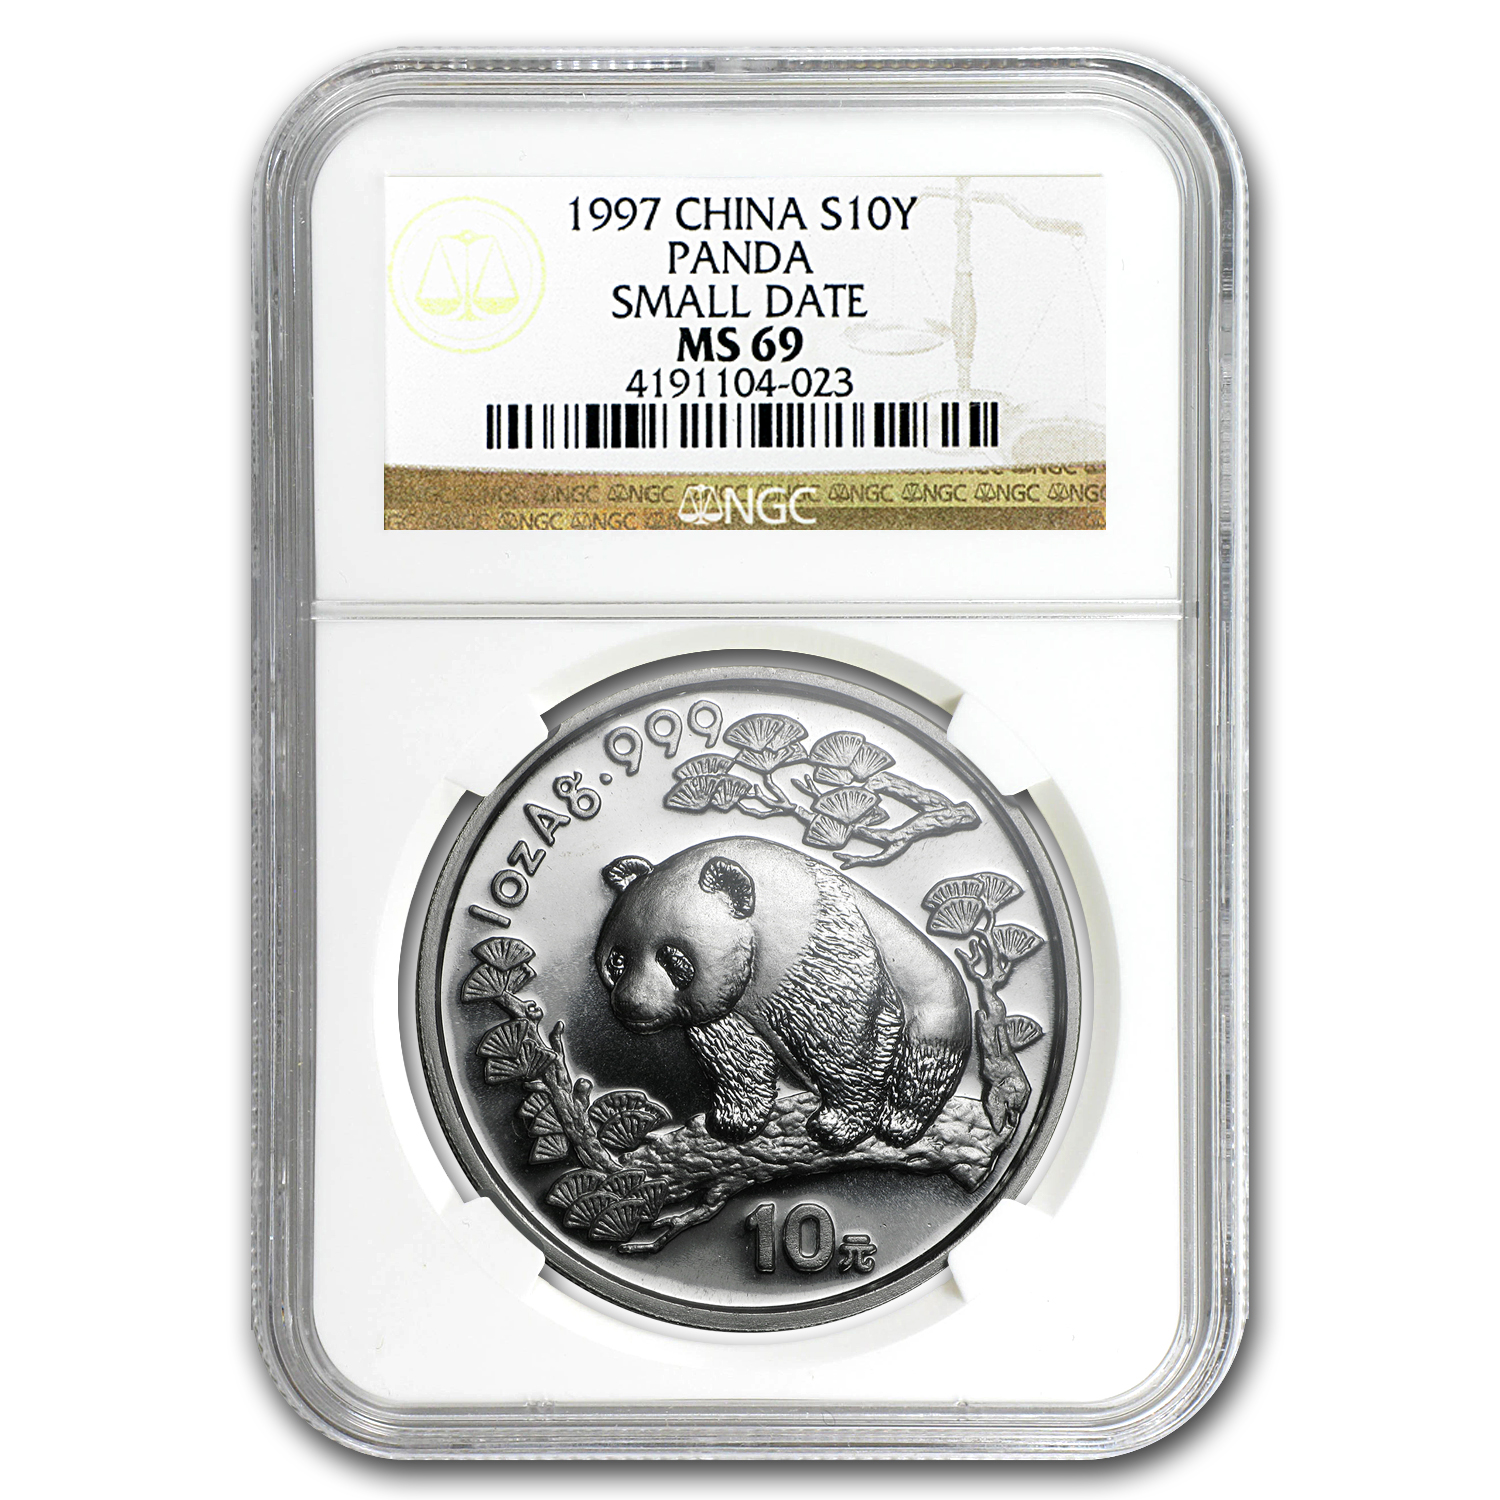 1997 China 1 oz Silver Panda MS-69 NGC (Small Date)